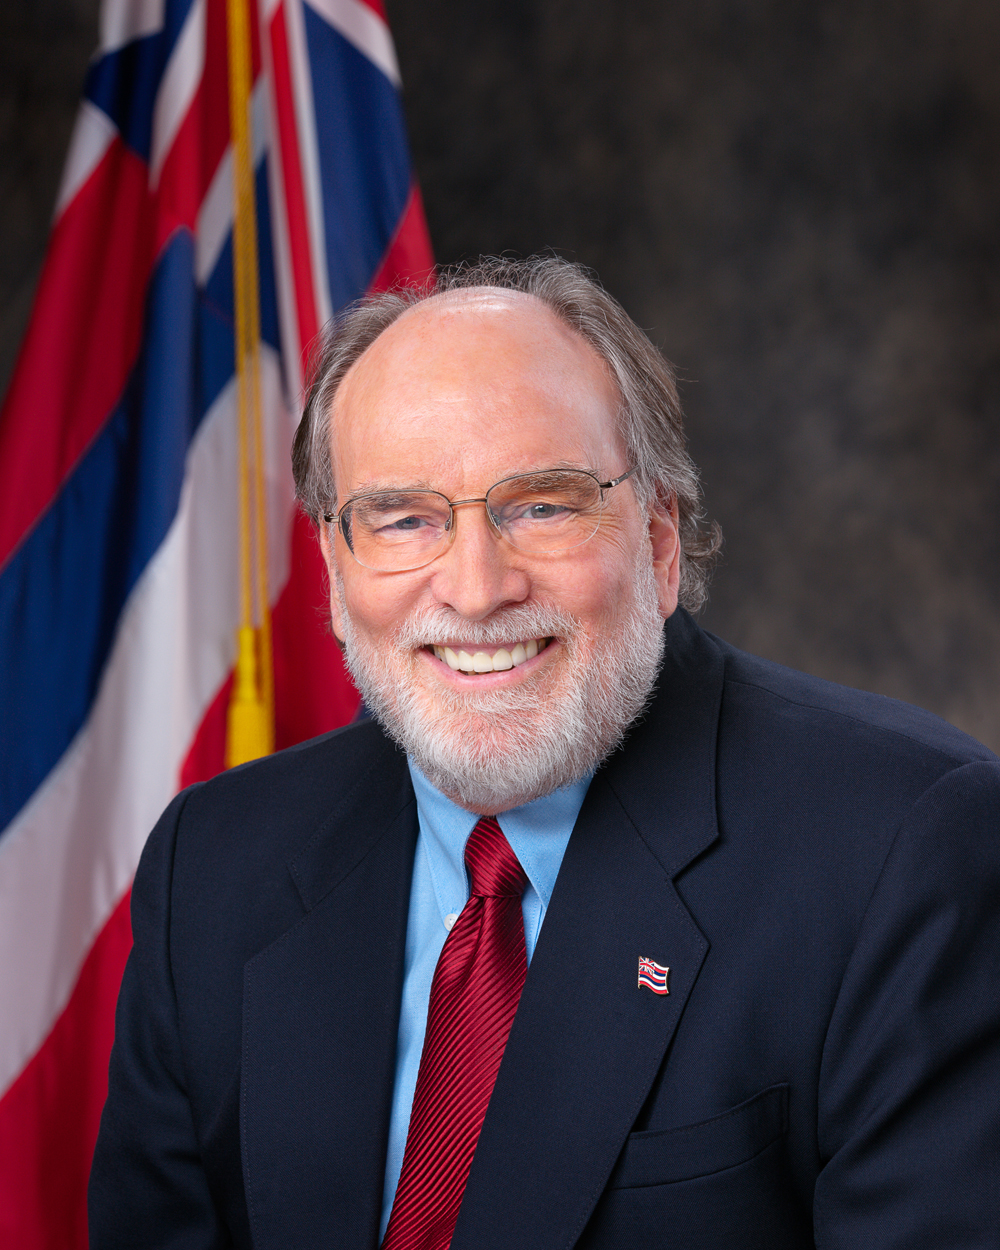 Honorable Neil Abercrombie